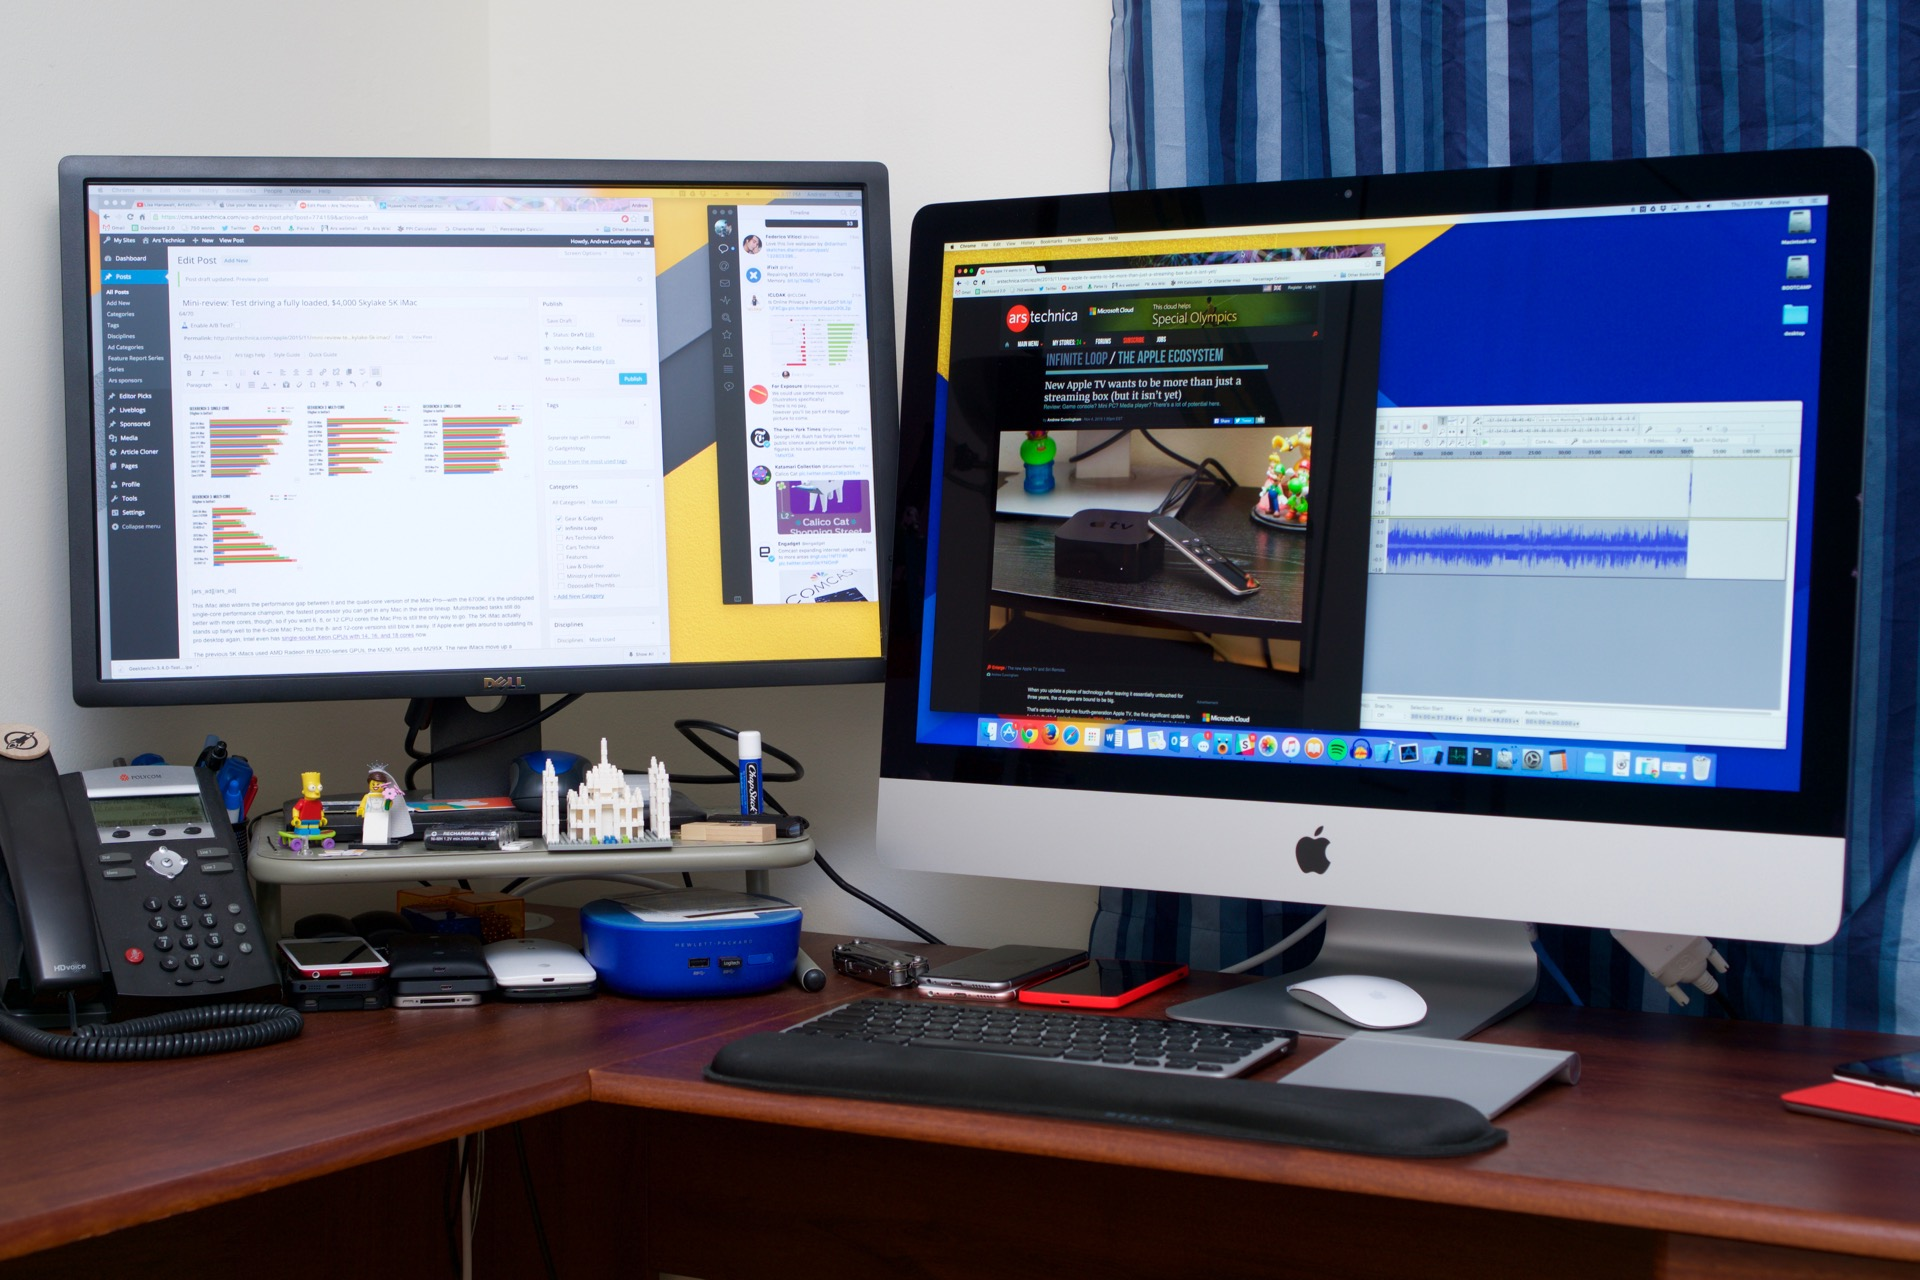 Mini review test driving a fully loaded 4 000 27 inch 5k imac ars technica - Computer desk for imac inch ...